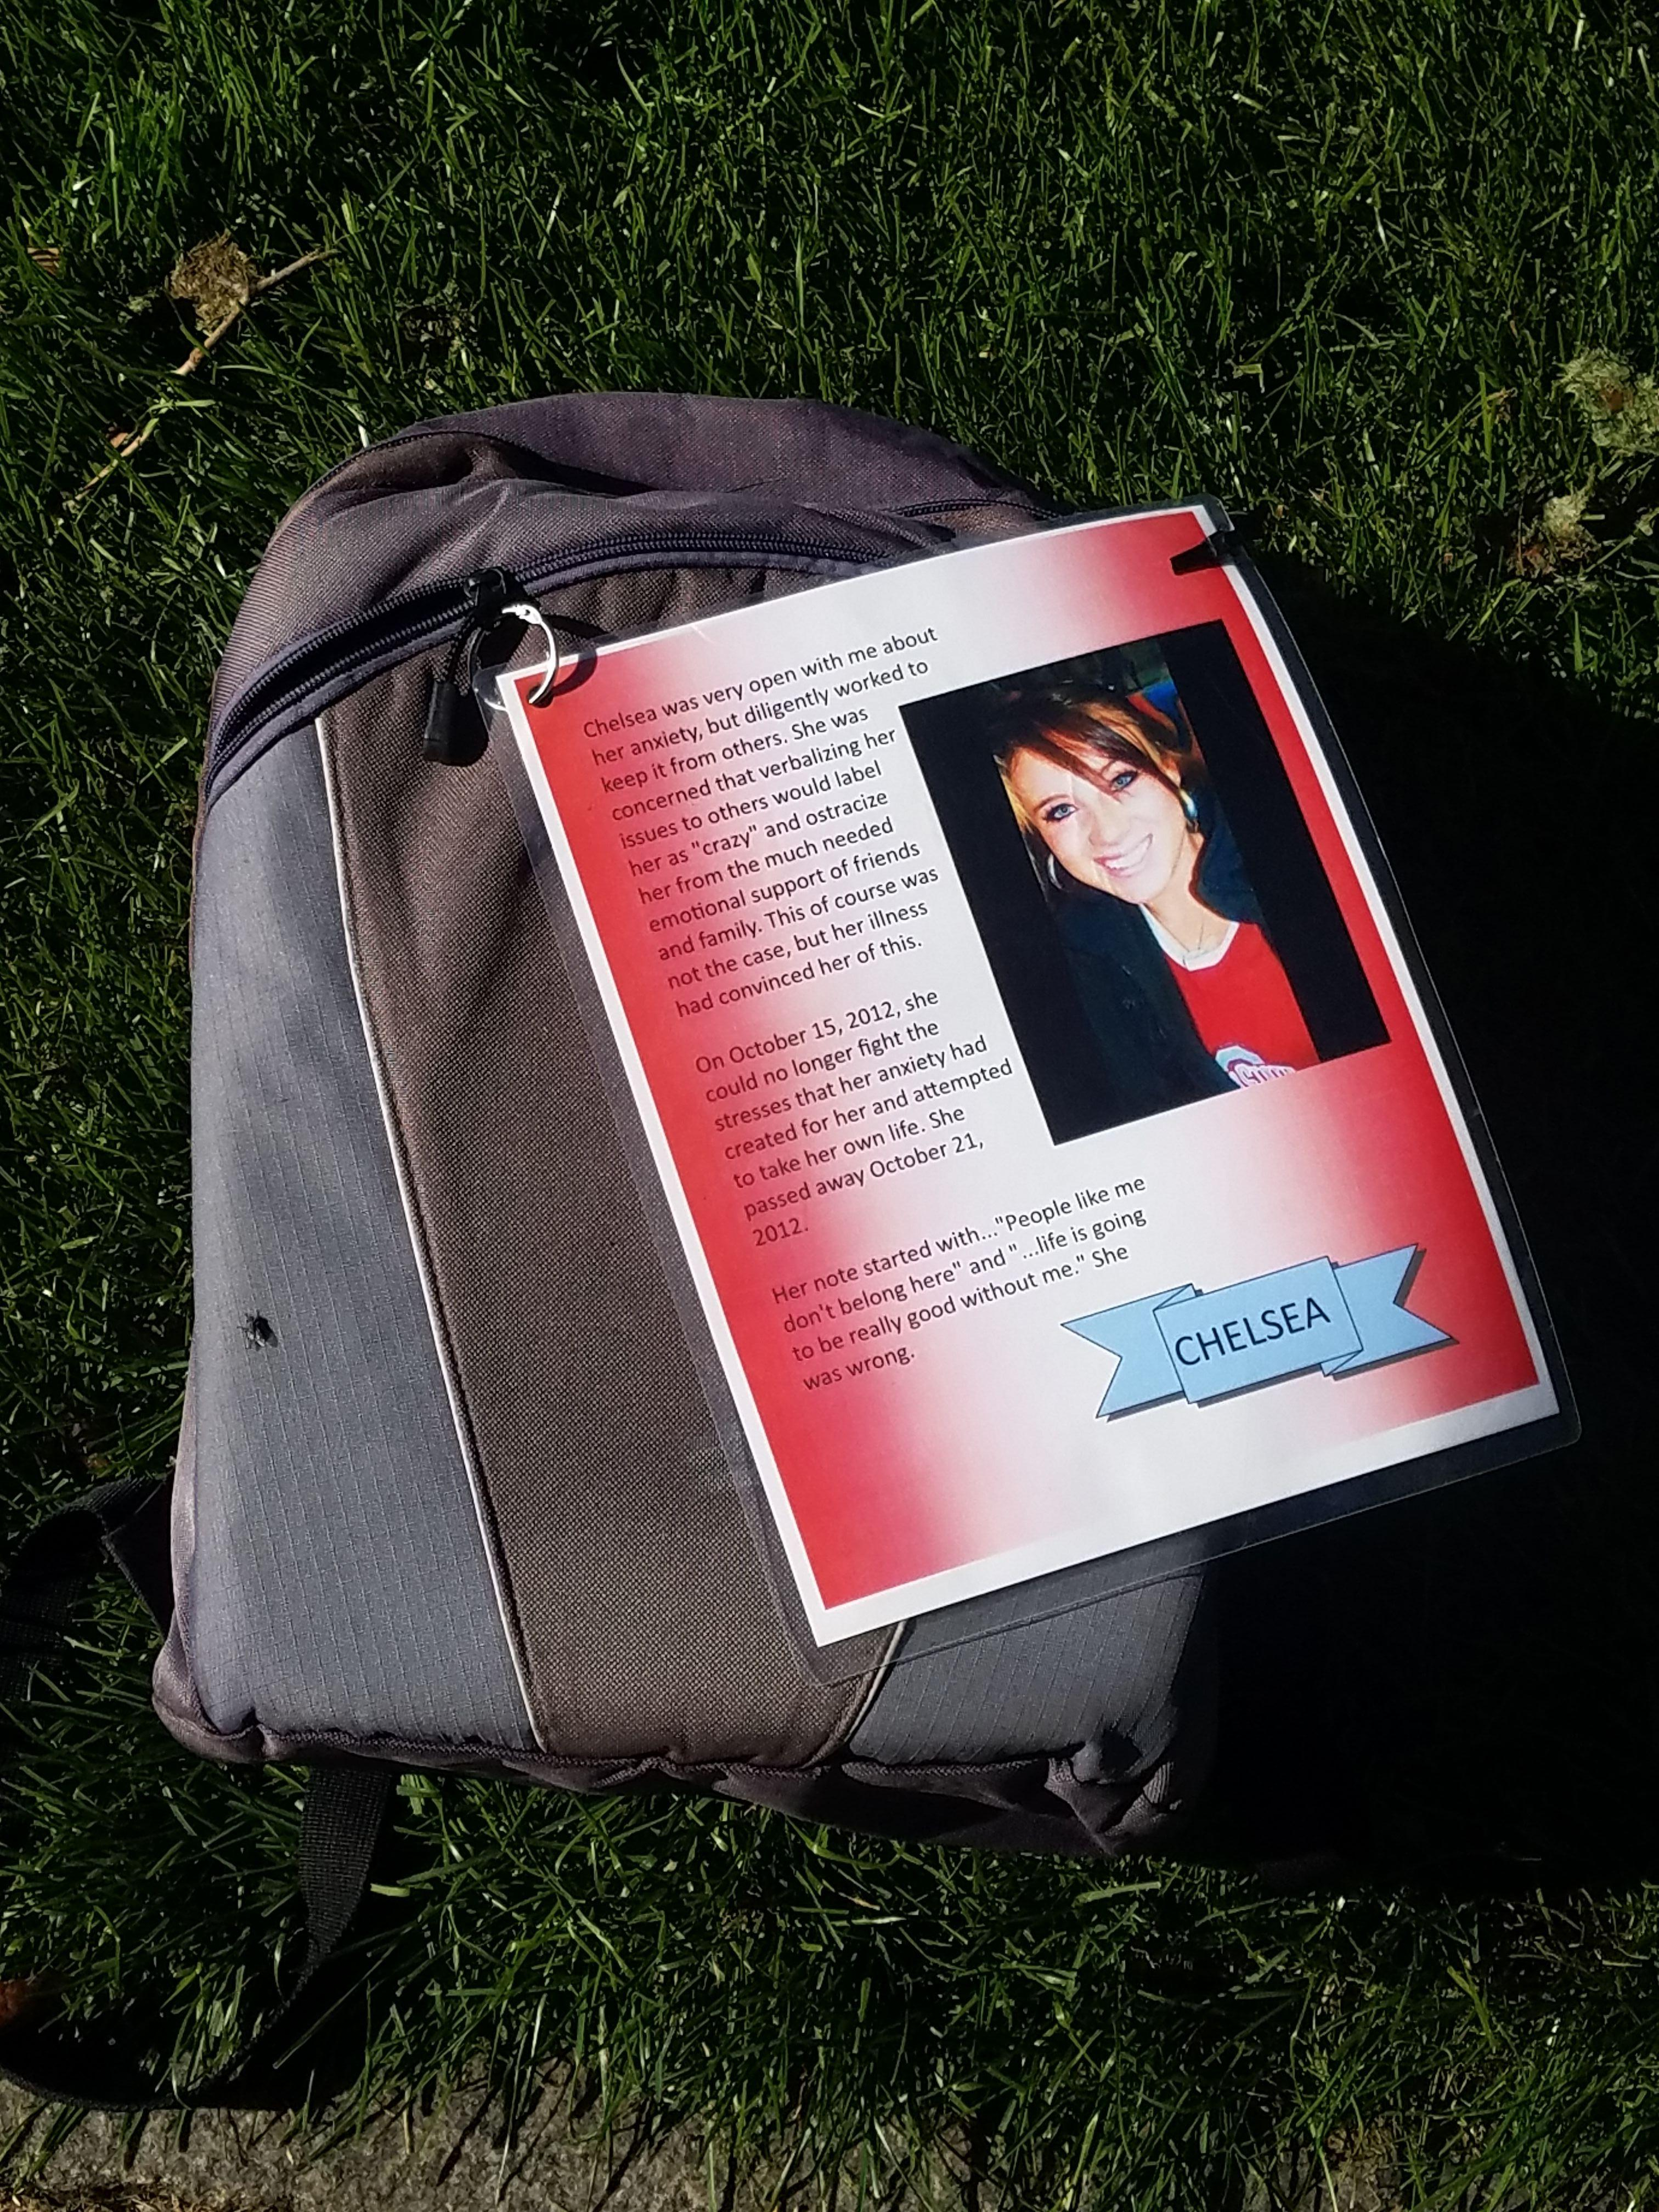 Example of one of the backpacks